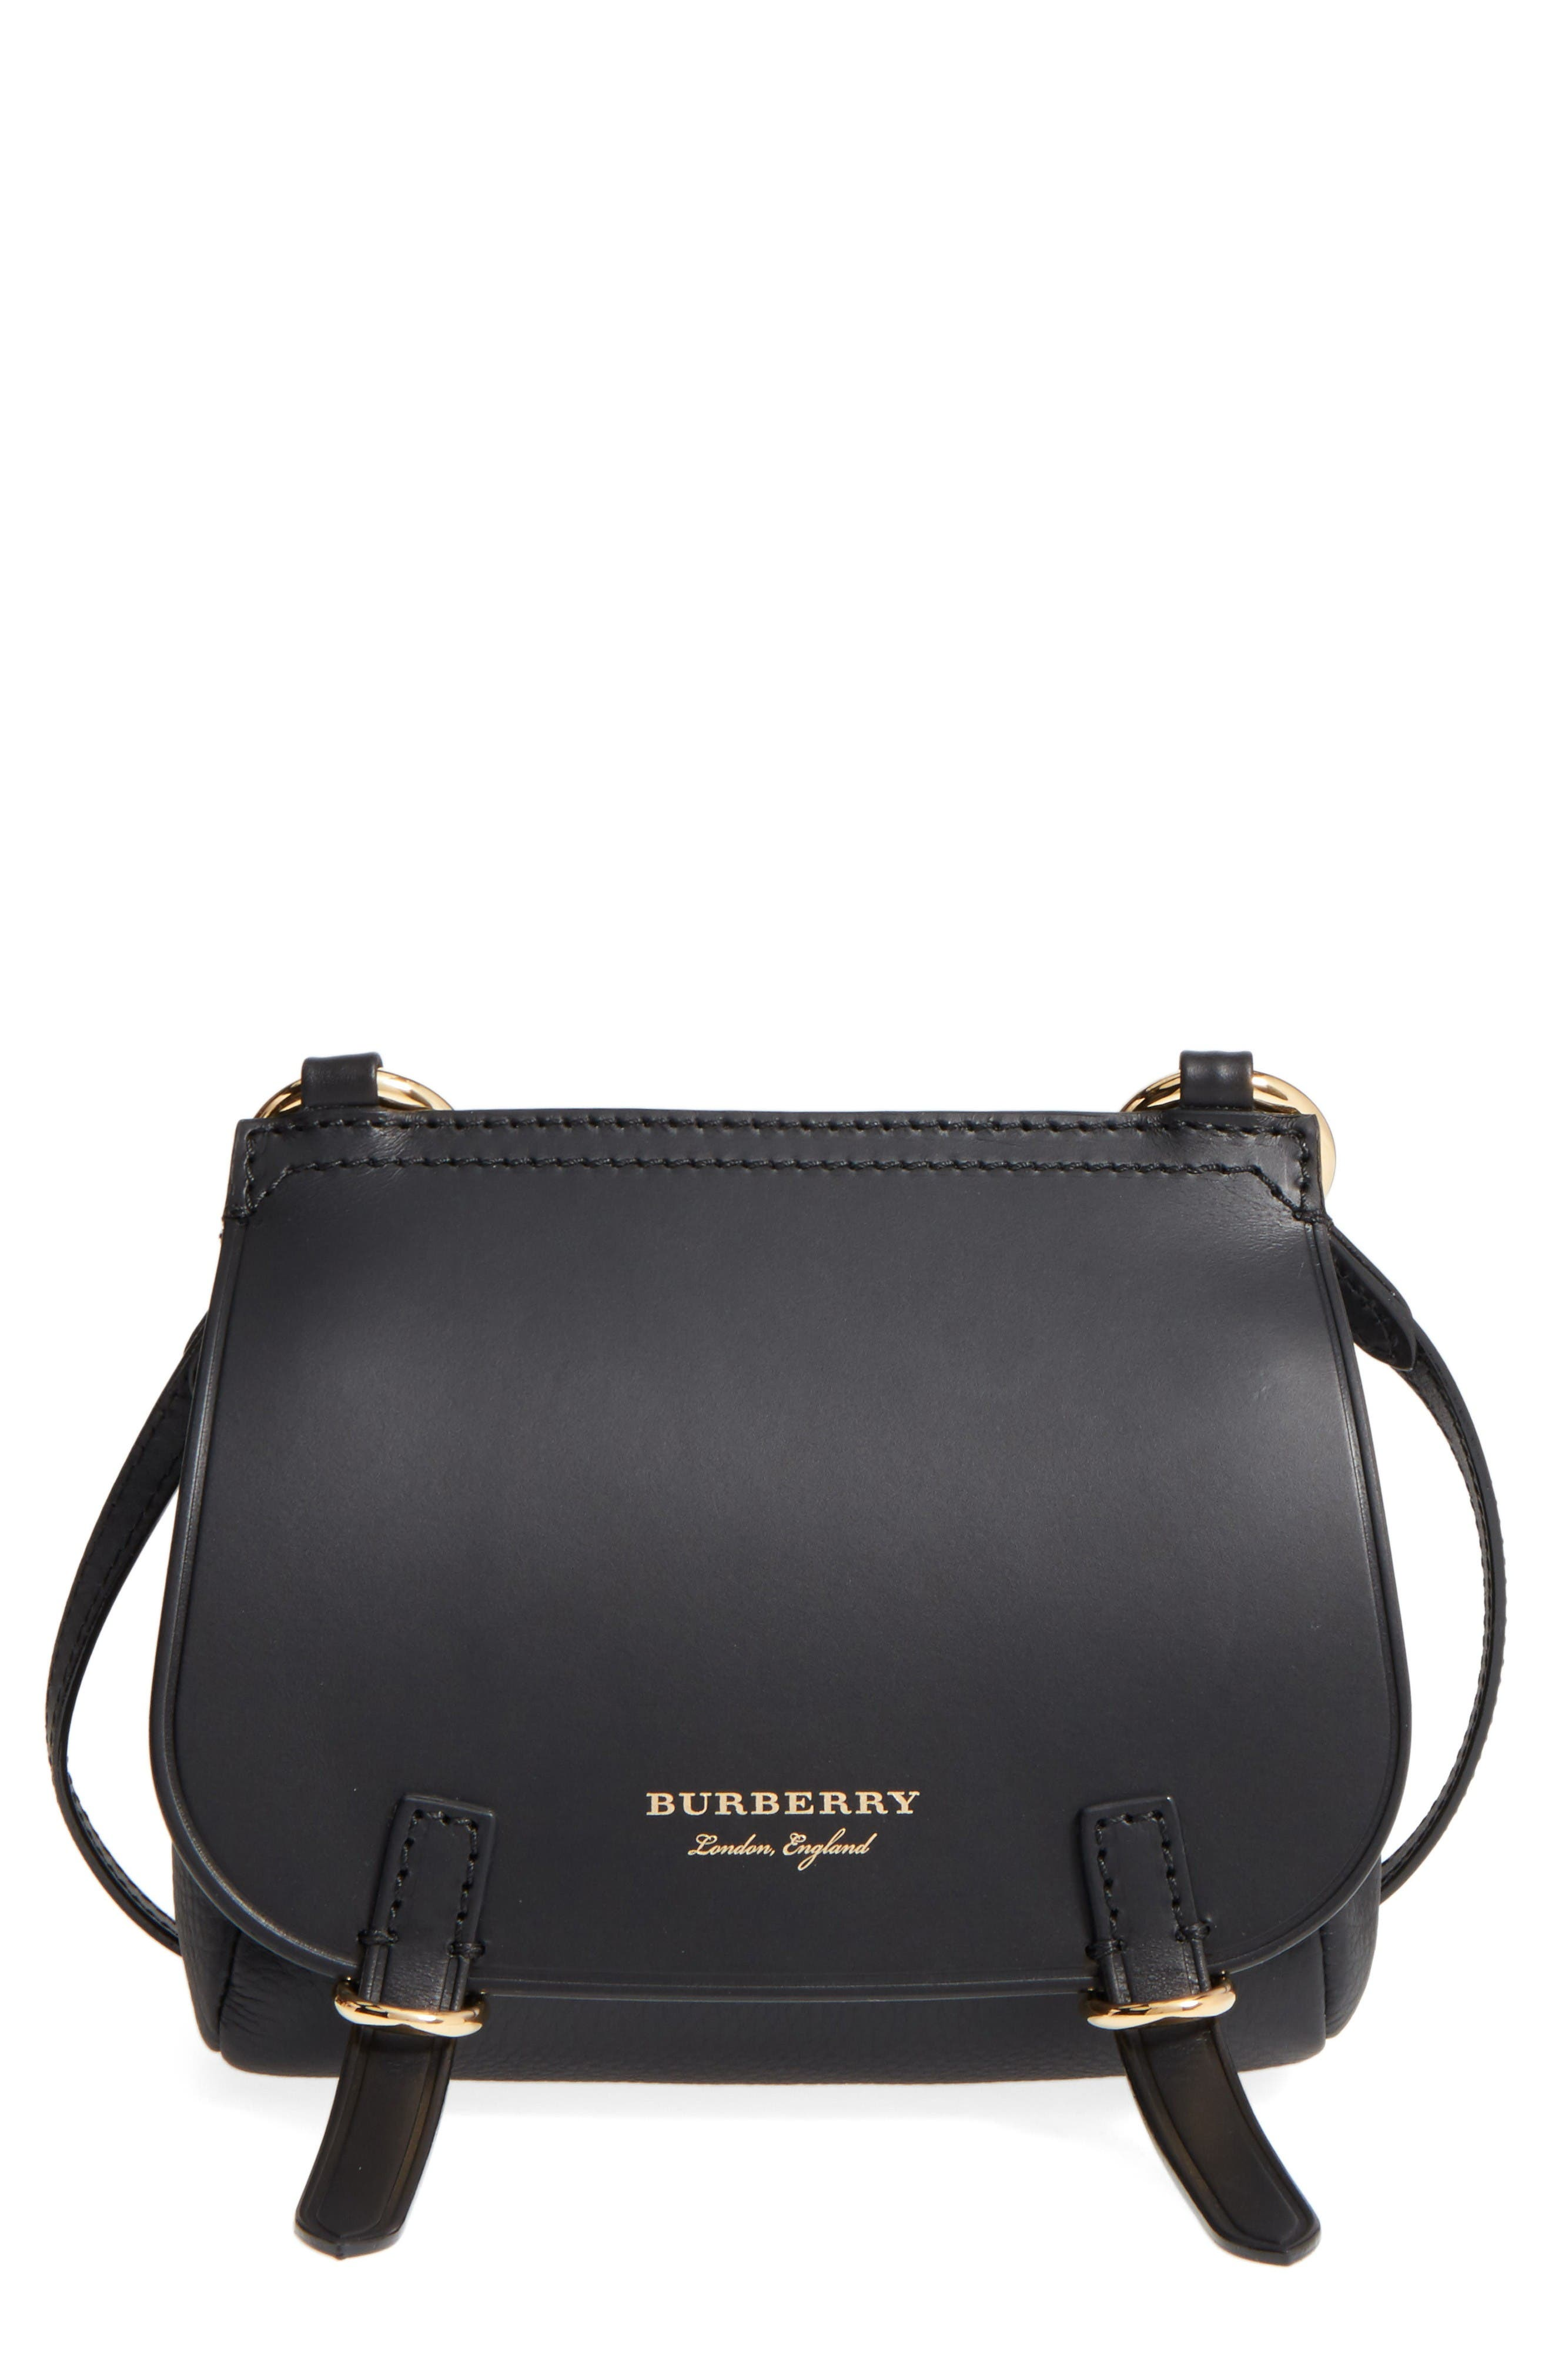 Burberry Bridle Leather Shoulder Bag